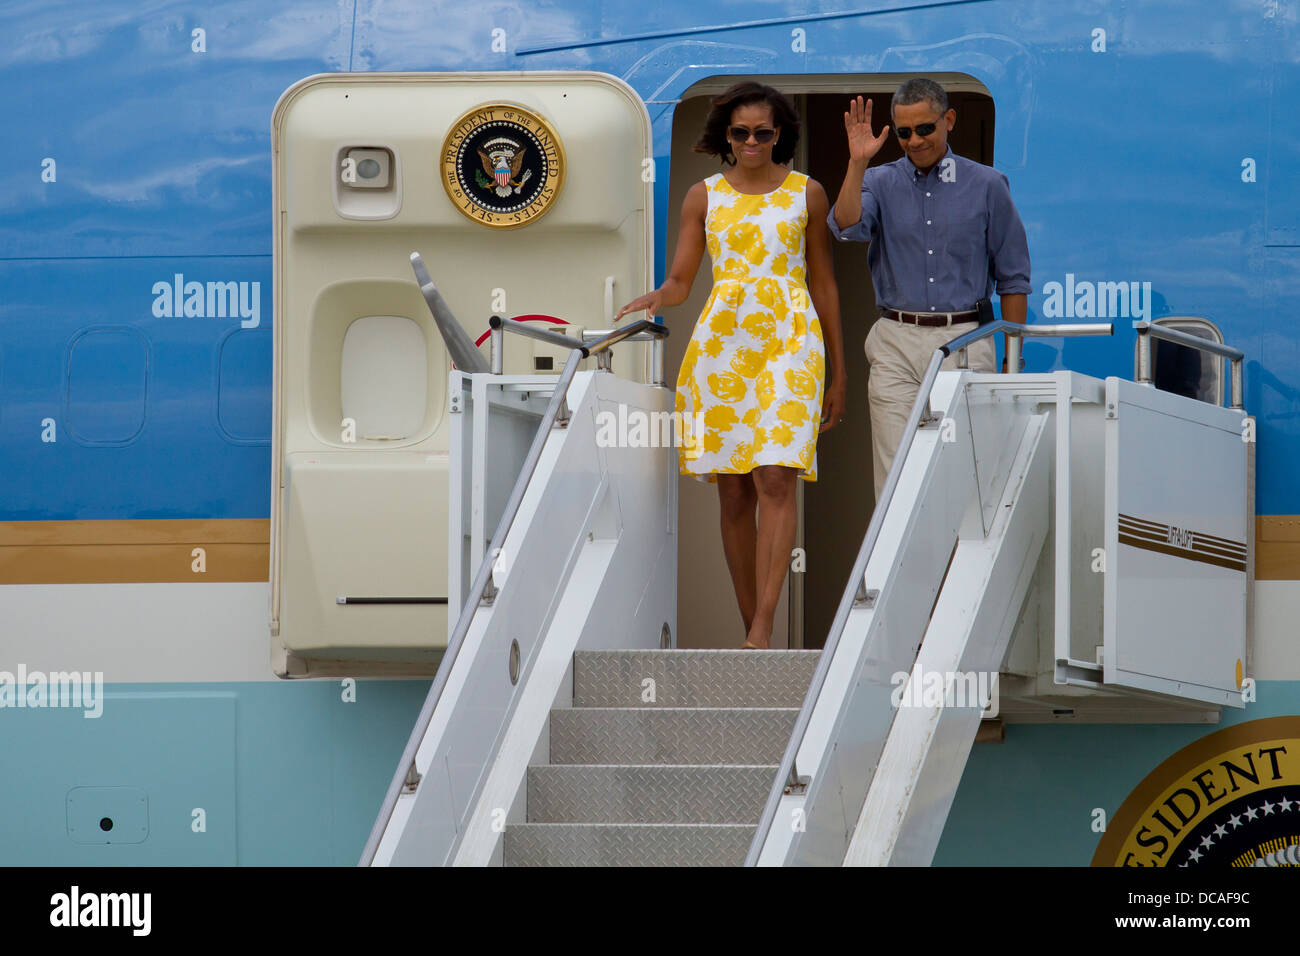 President Barack Obama visits Joint Base Cape Cod on Aug. 10, 2013. President Obama landed on Air Force One and - Stock Image